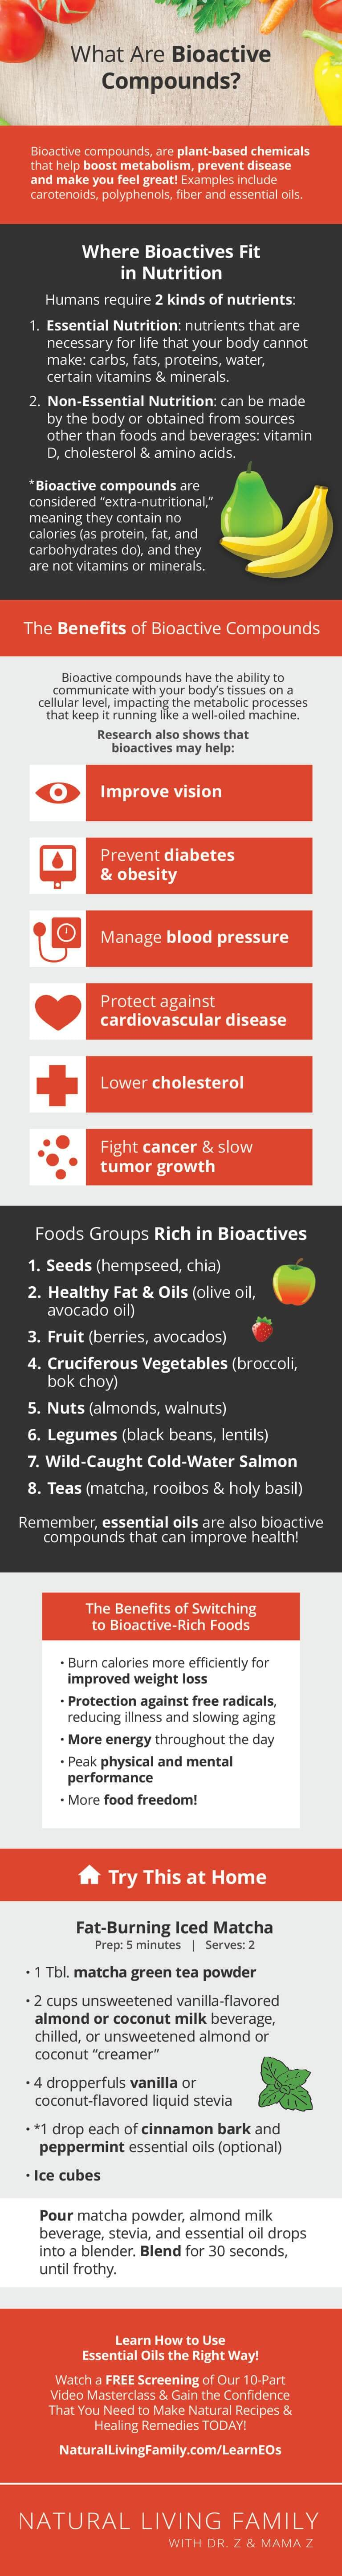 Bioactive Foods What they Are & Why You Need Them in Your Diet! Infographic